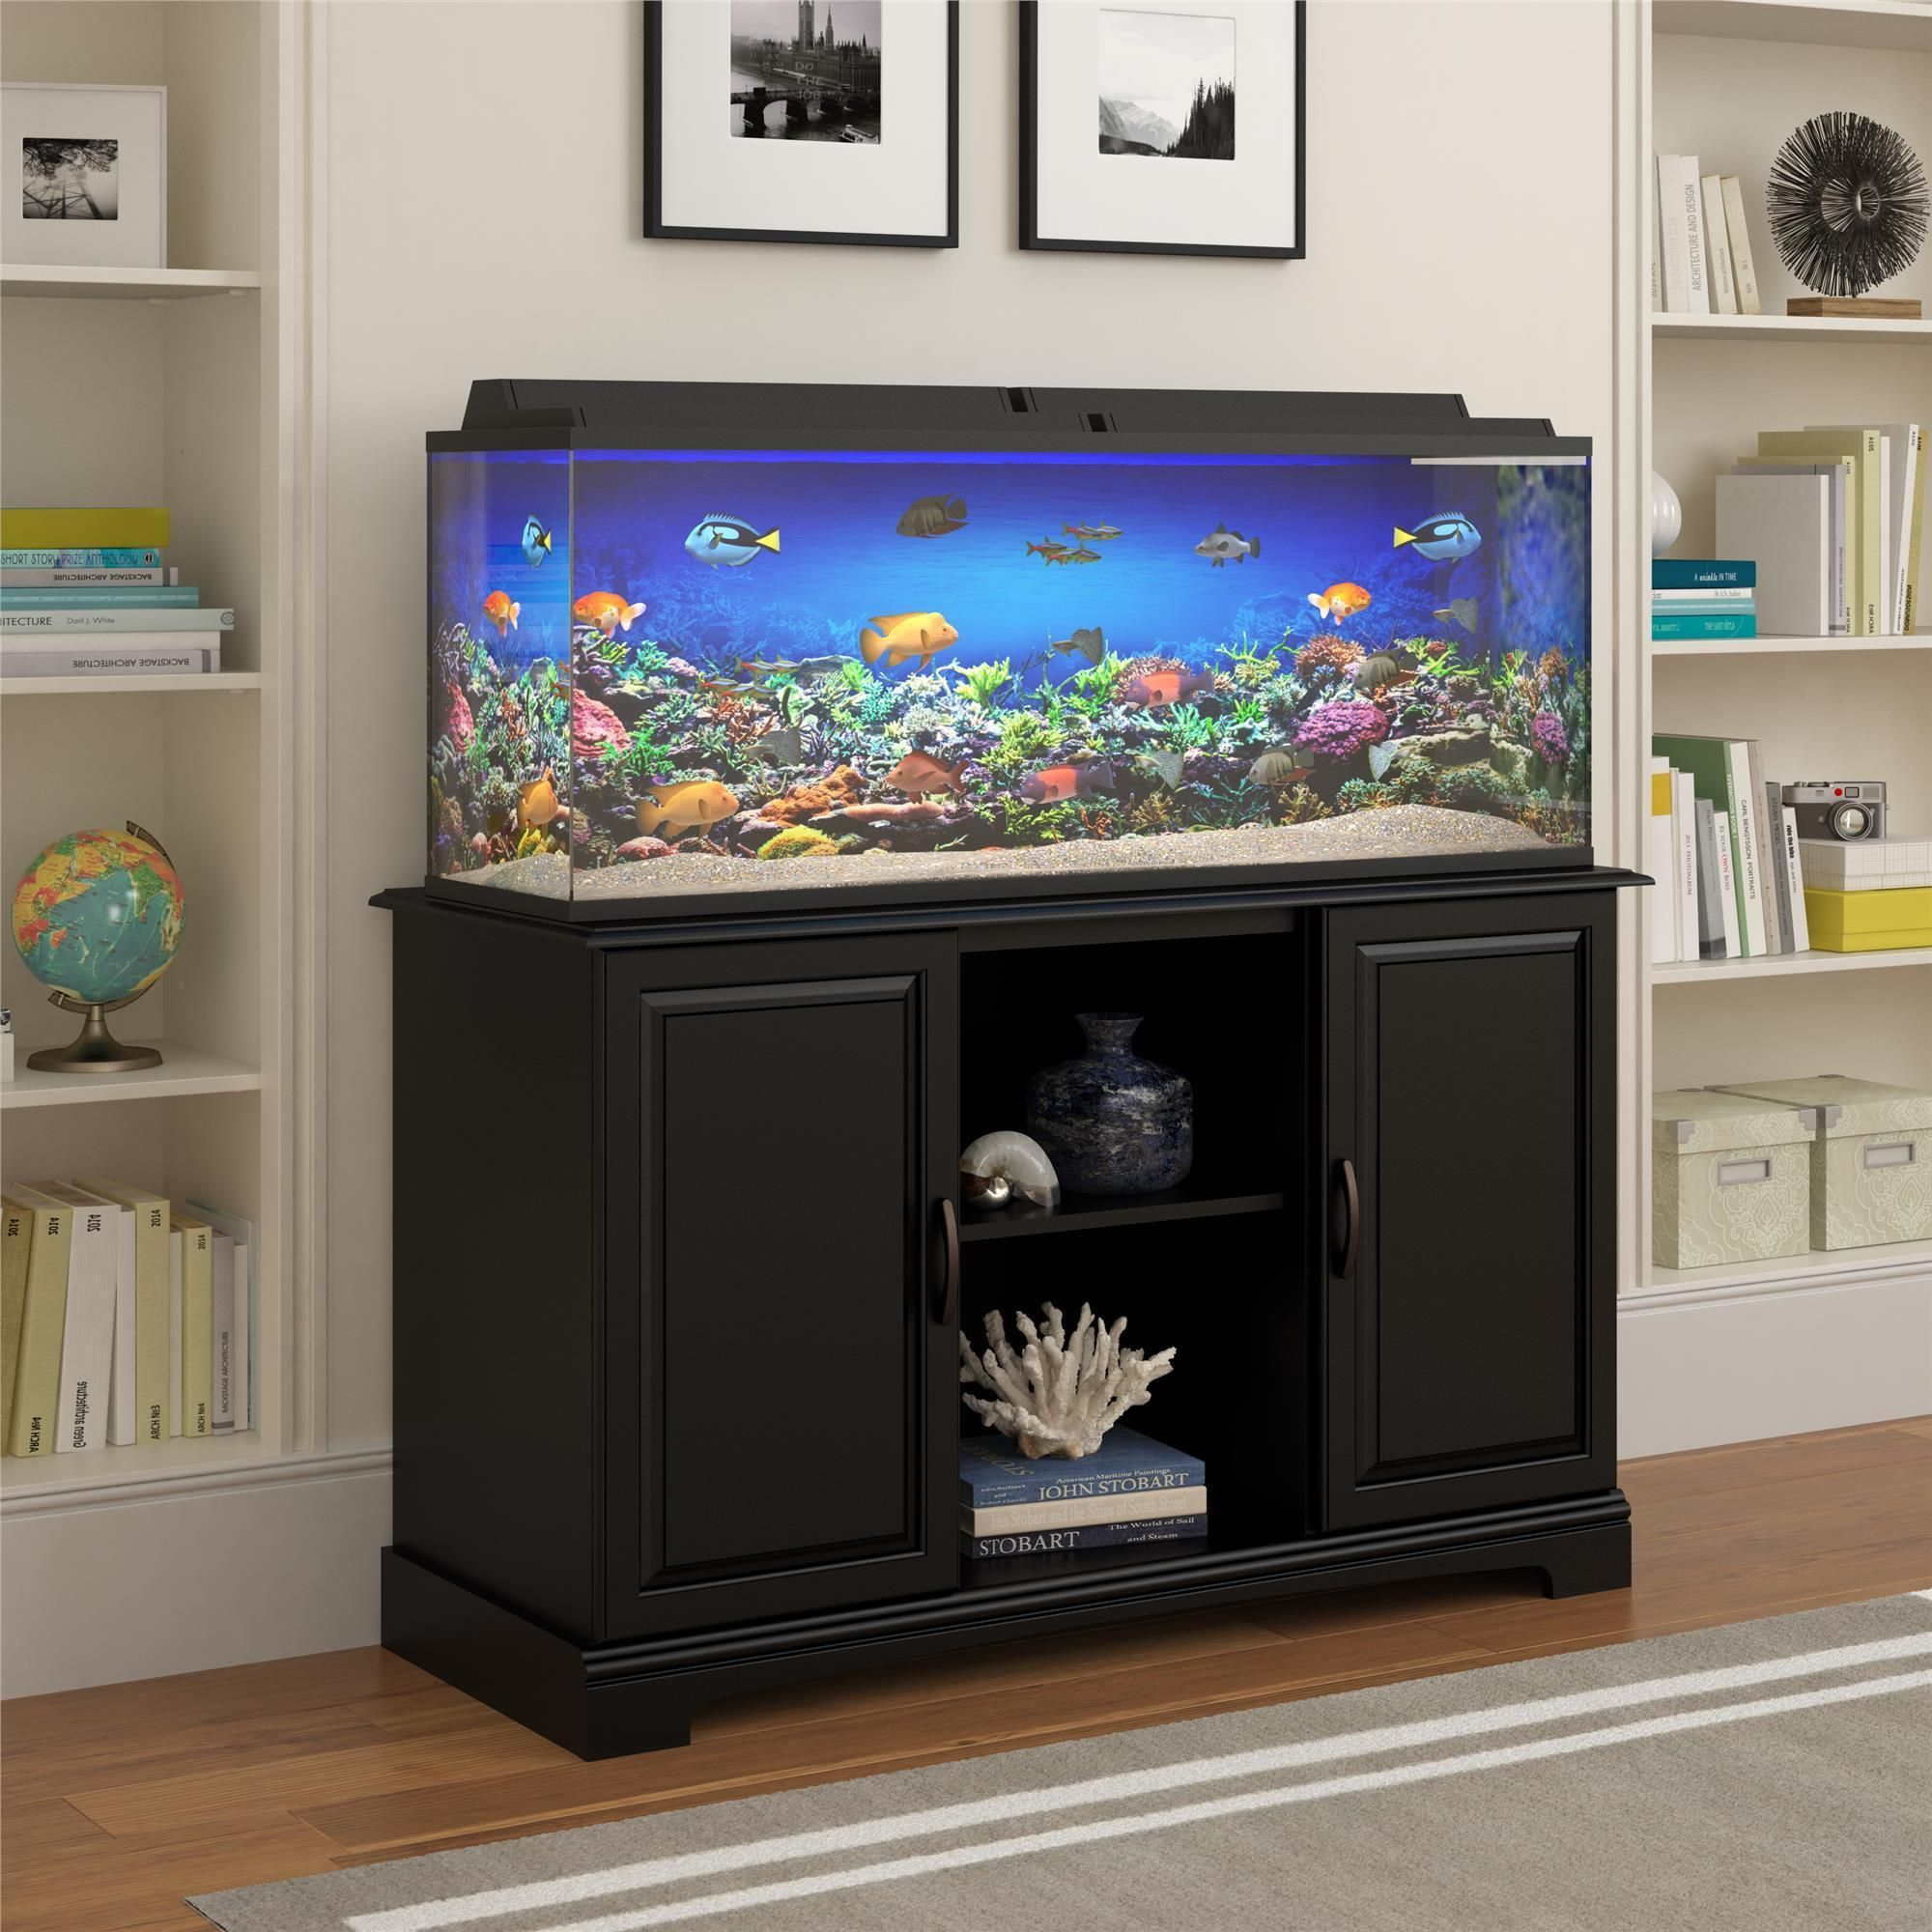 Altra harbor 50 75 gallon aquarium stand fish tanks for Muebles de acuario